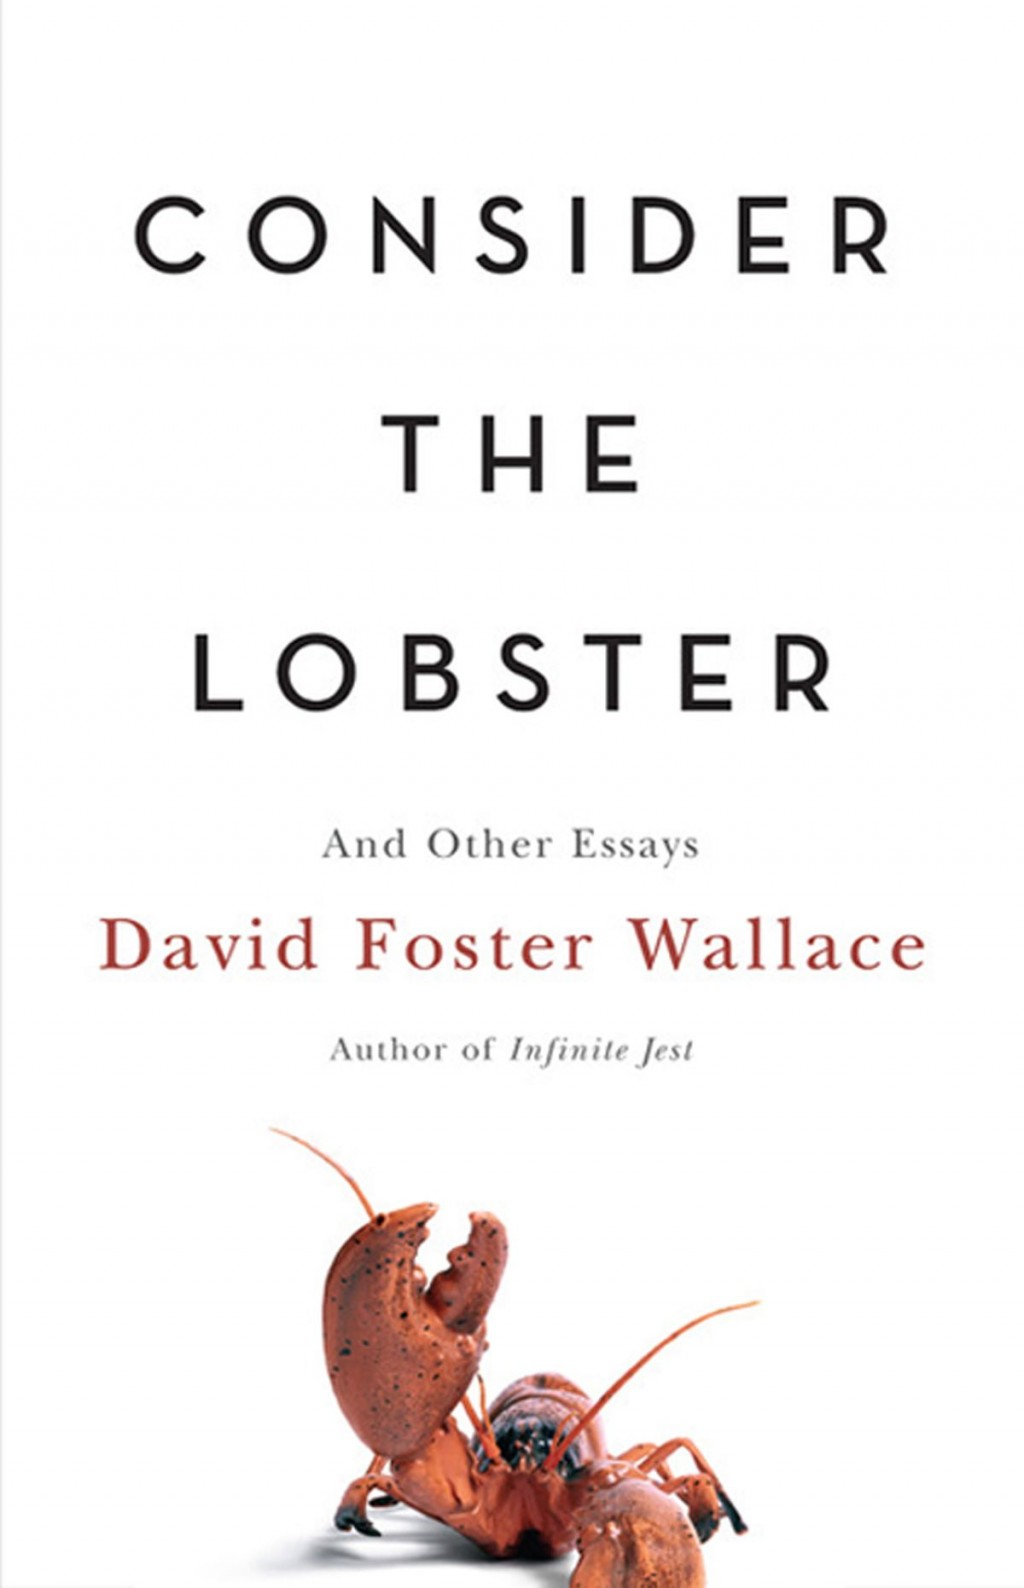 002 Consider The Lobster Essay Exceptional Rhetorical Analysis And Other Essays Summary Large